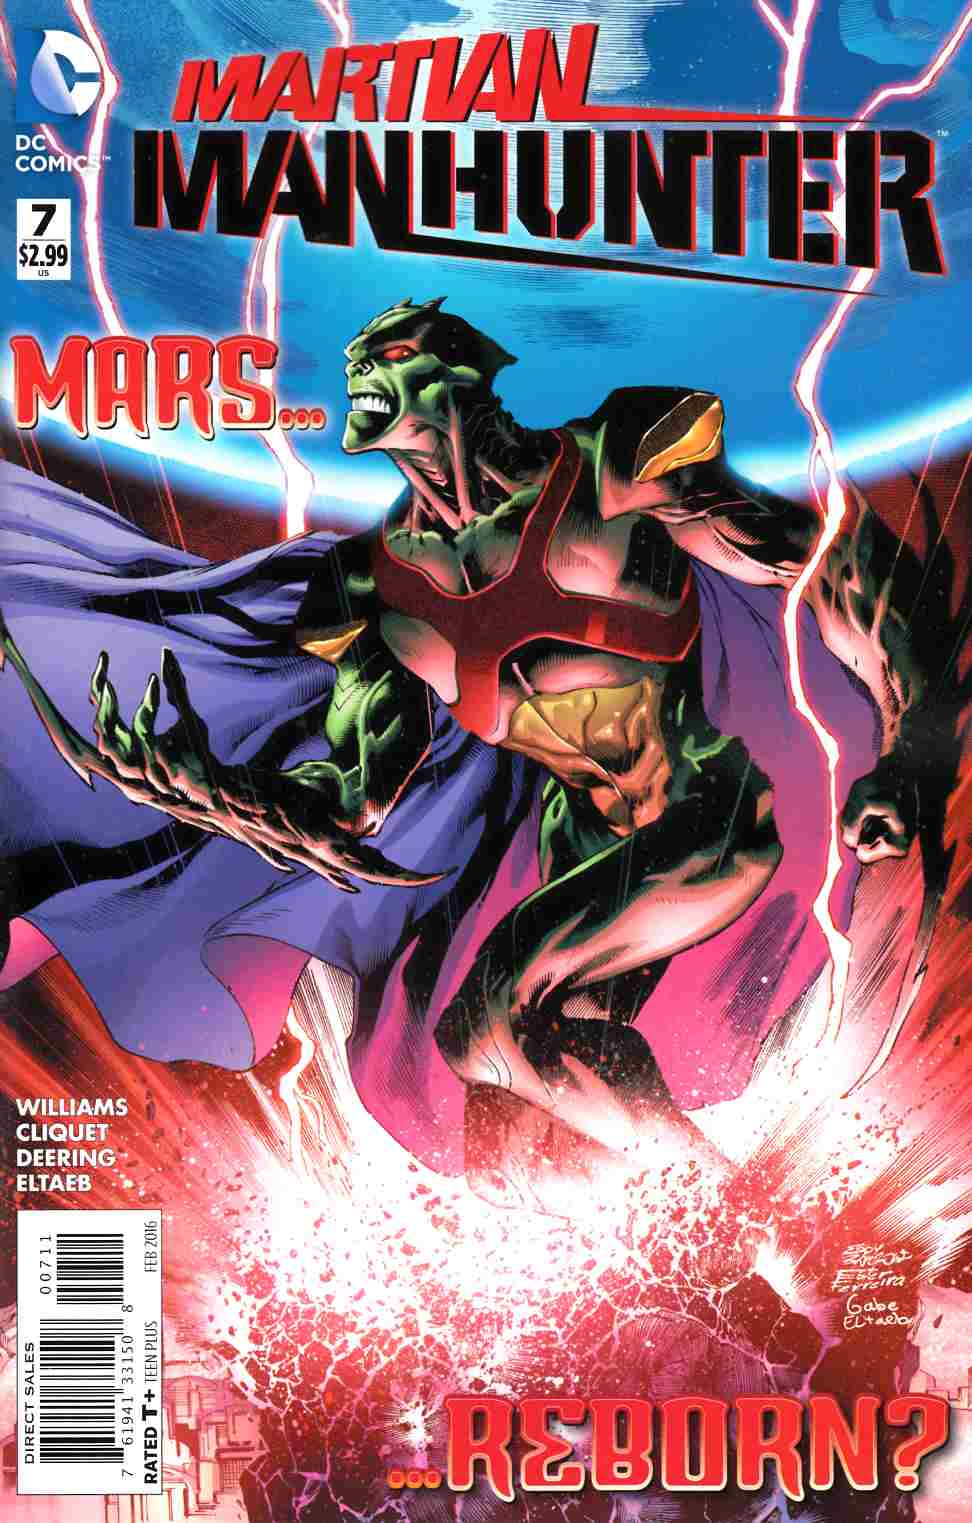 Martian Manhunter #7 [DC Comic] THUMBNAIL